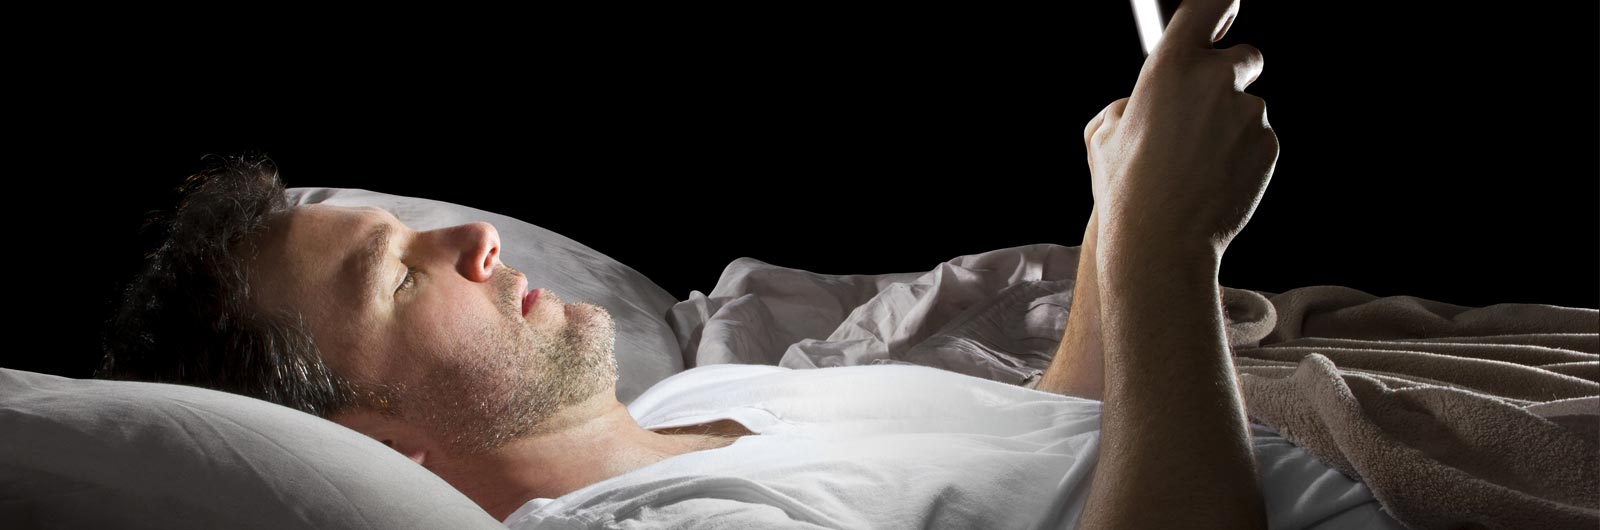 Sleep tips header photo